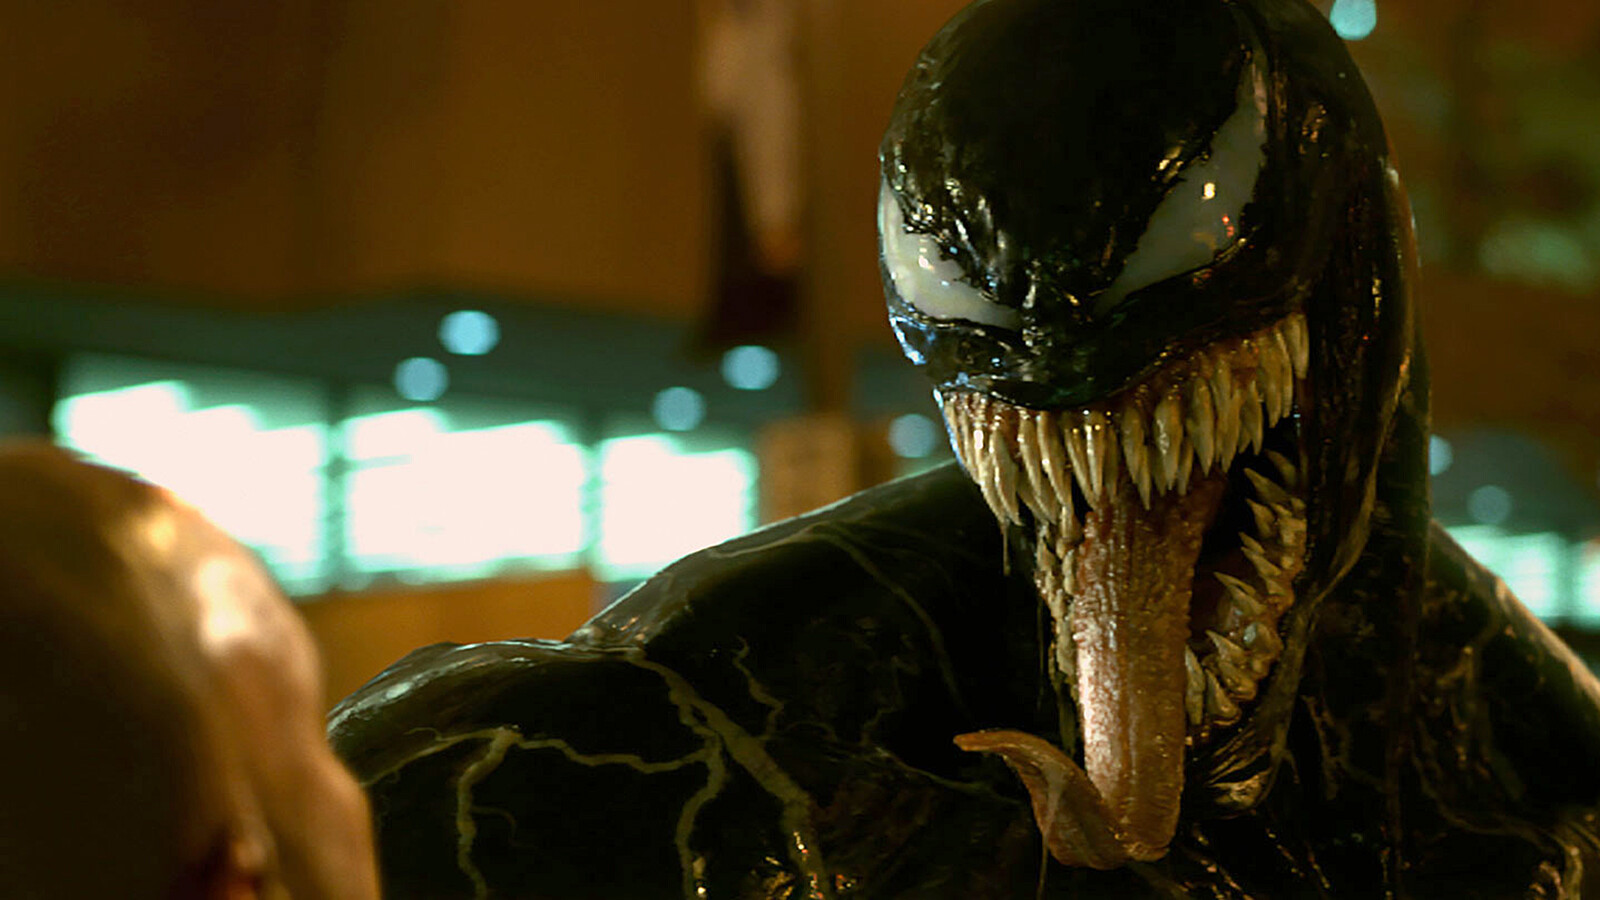 The new 'Venom' sequel trailer is here and it's gory